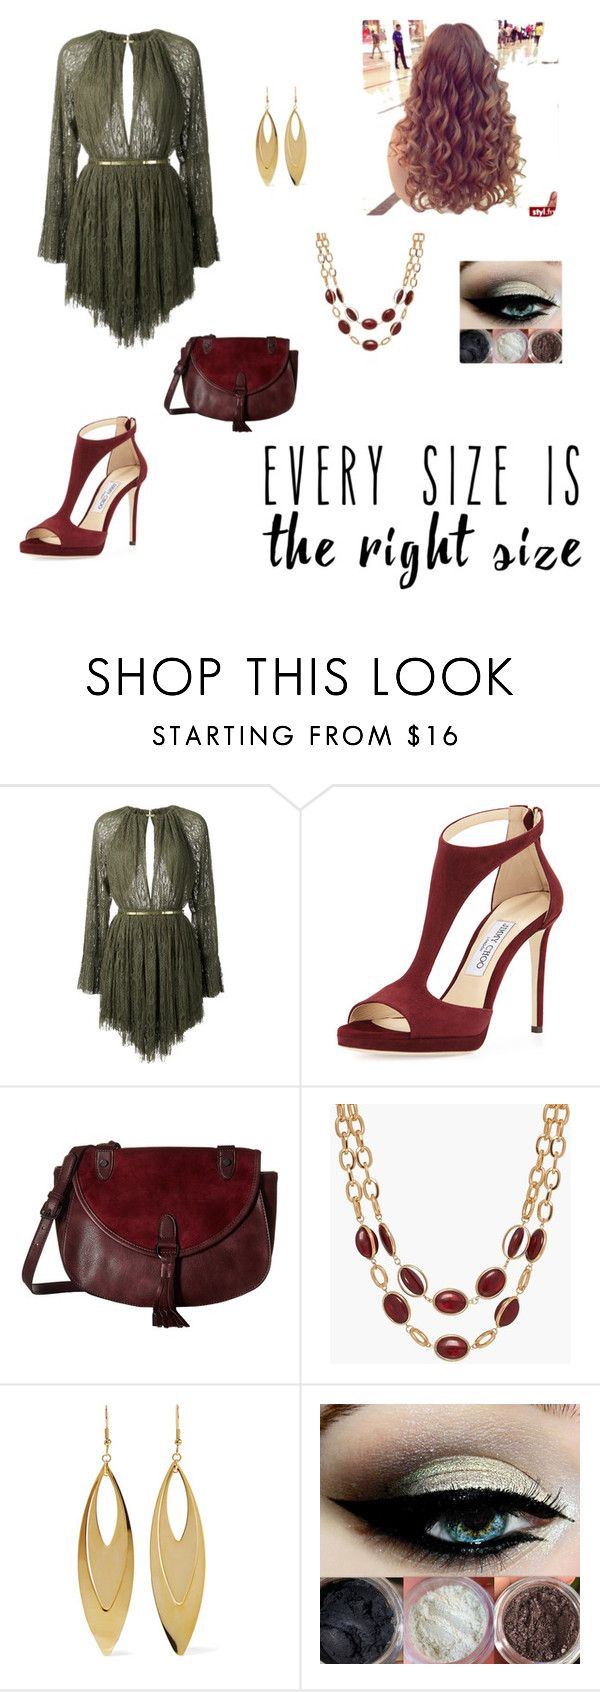 """Olive and Burgundy ? Perfecto"" by taylnick ❤ liked on Polyvore featuring Jay Ahr, Jimmy Choo, Madden Girl, Talbots, Kenneth Jay Lane and powerlook"